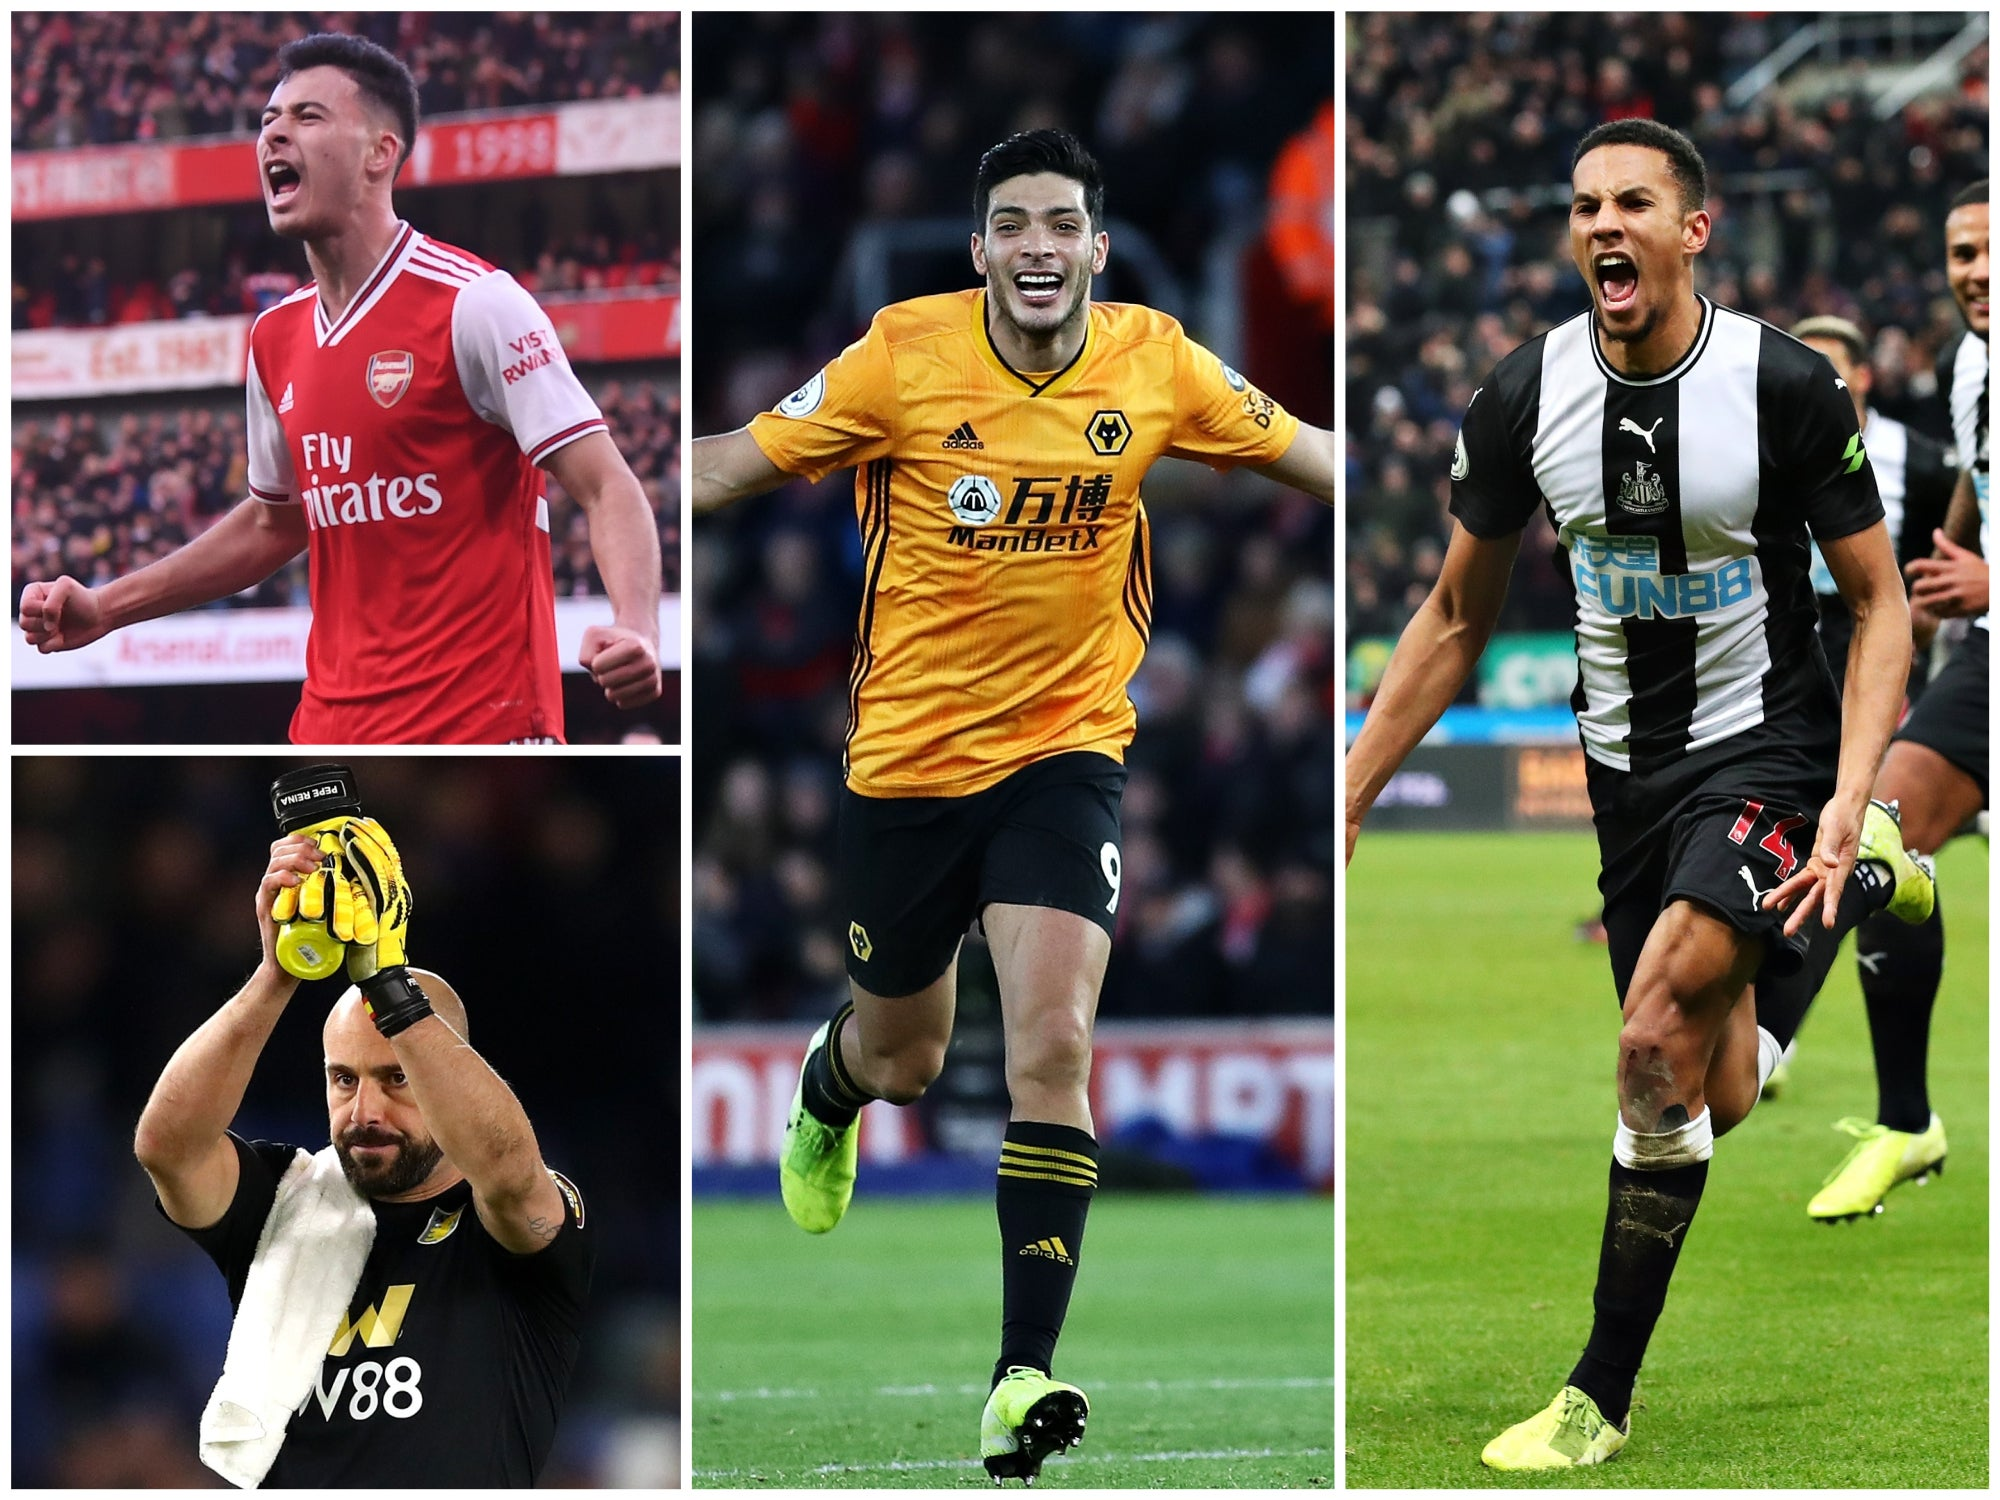 Liverpool stroll to title as Tottenham stutter and Arsenal take solace: 10 things we learned this weekend